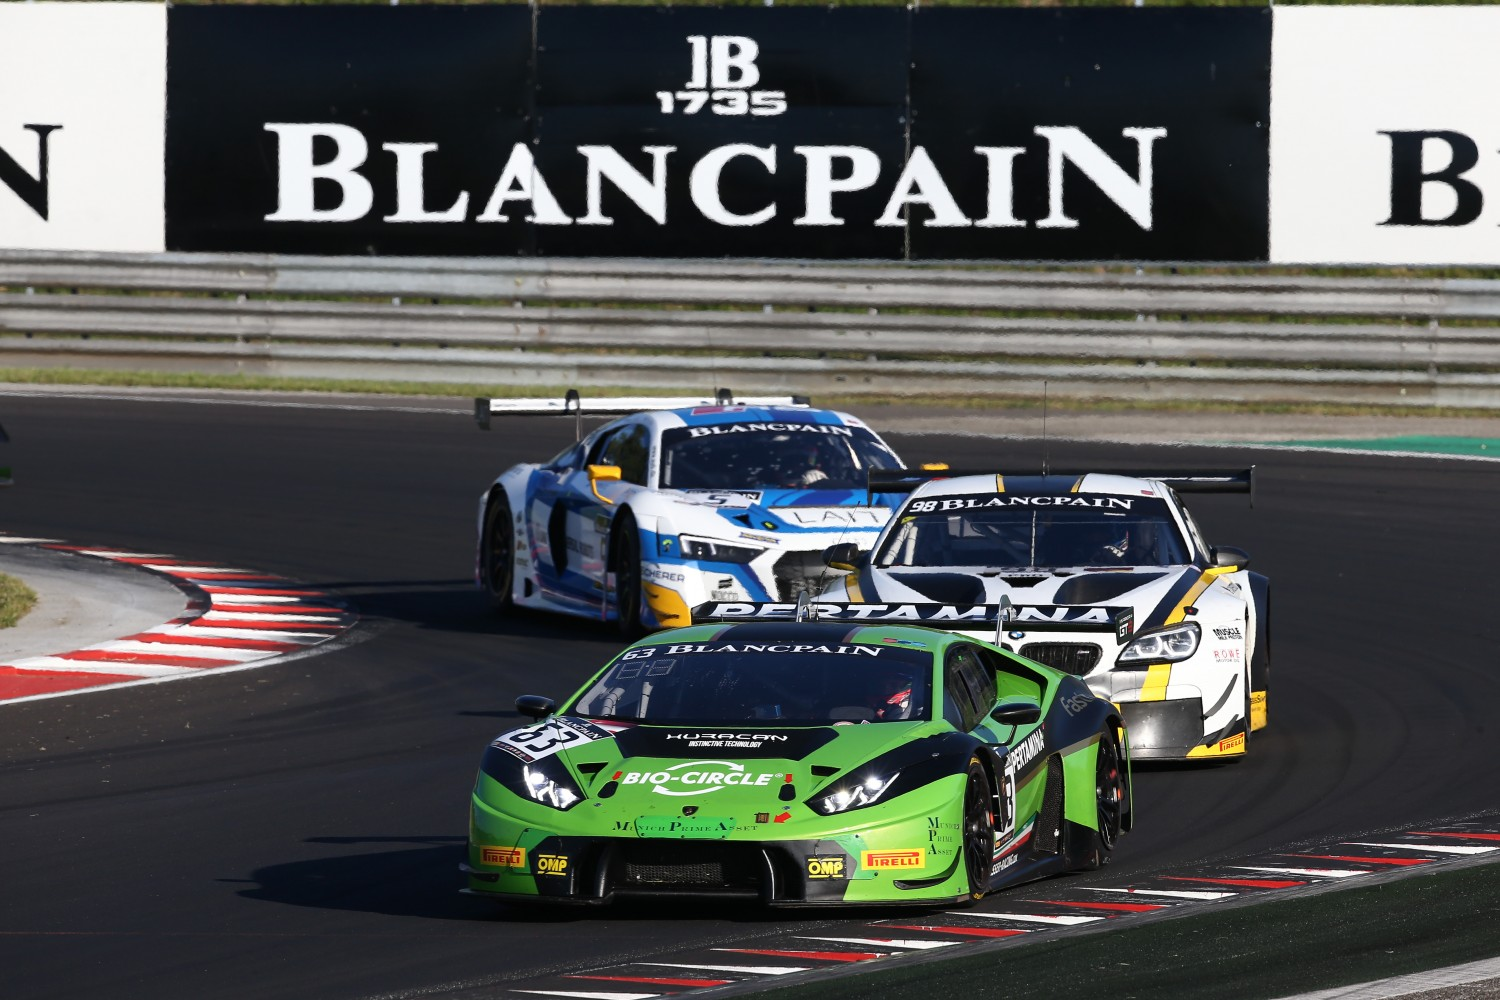 Hungaroring: Fierce competition guaranteed